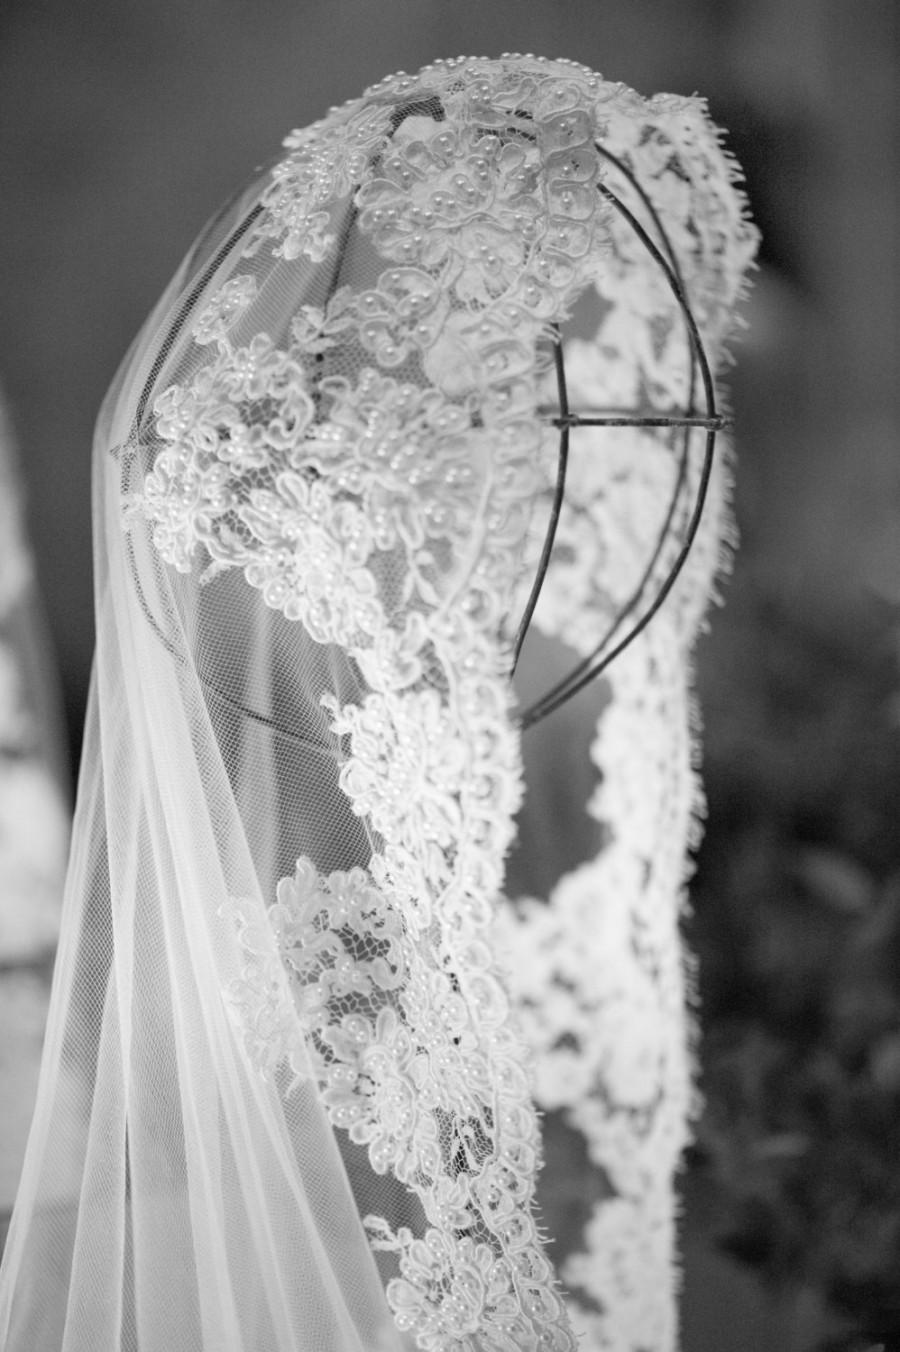 Wedding - Wedding Veil - Hip Length Mantilla with Vintage French Alencon Lace and  Vintge Faux Pearls, Design at Crown